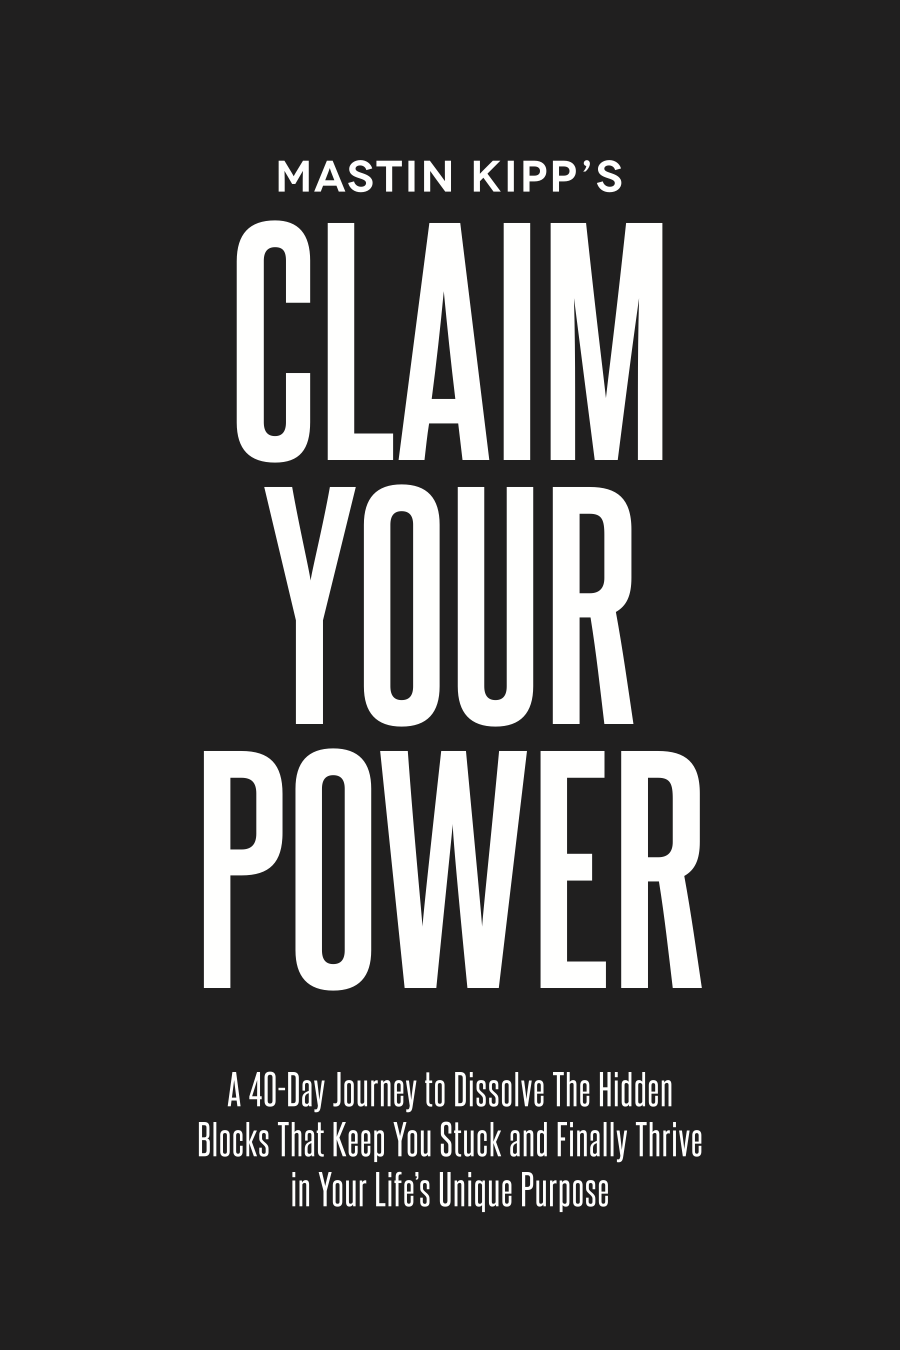 Claim Your Power - Final Cover